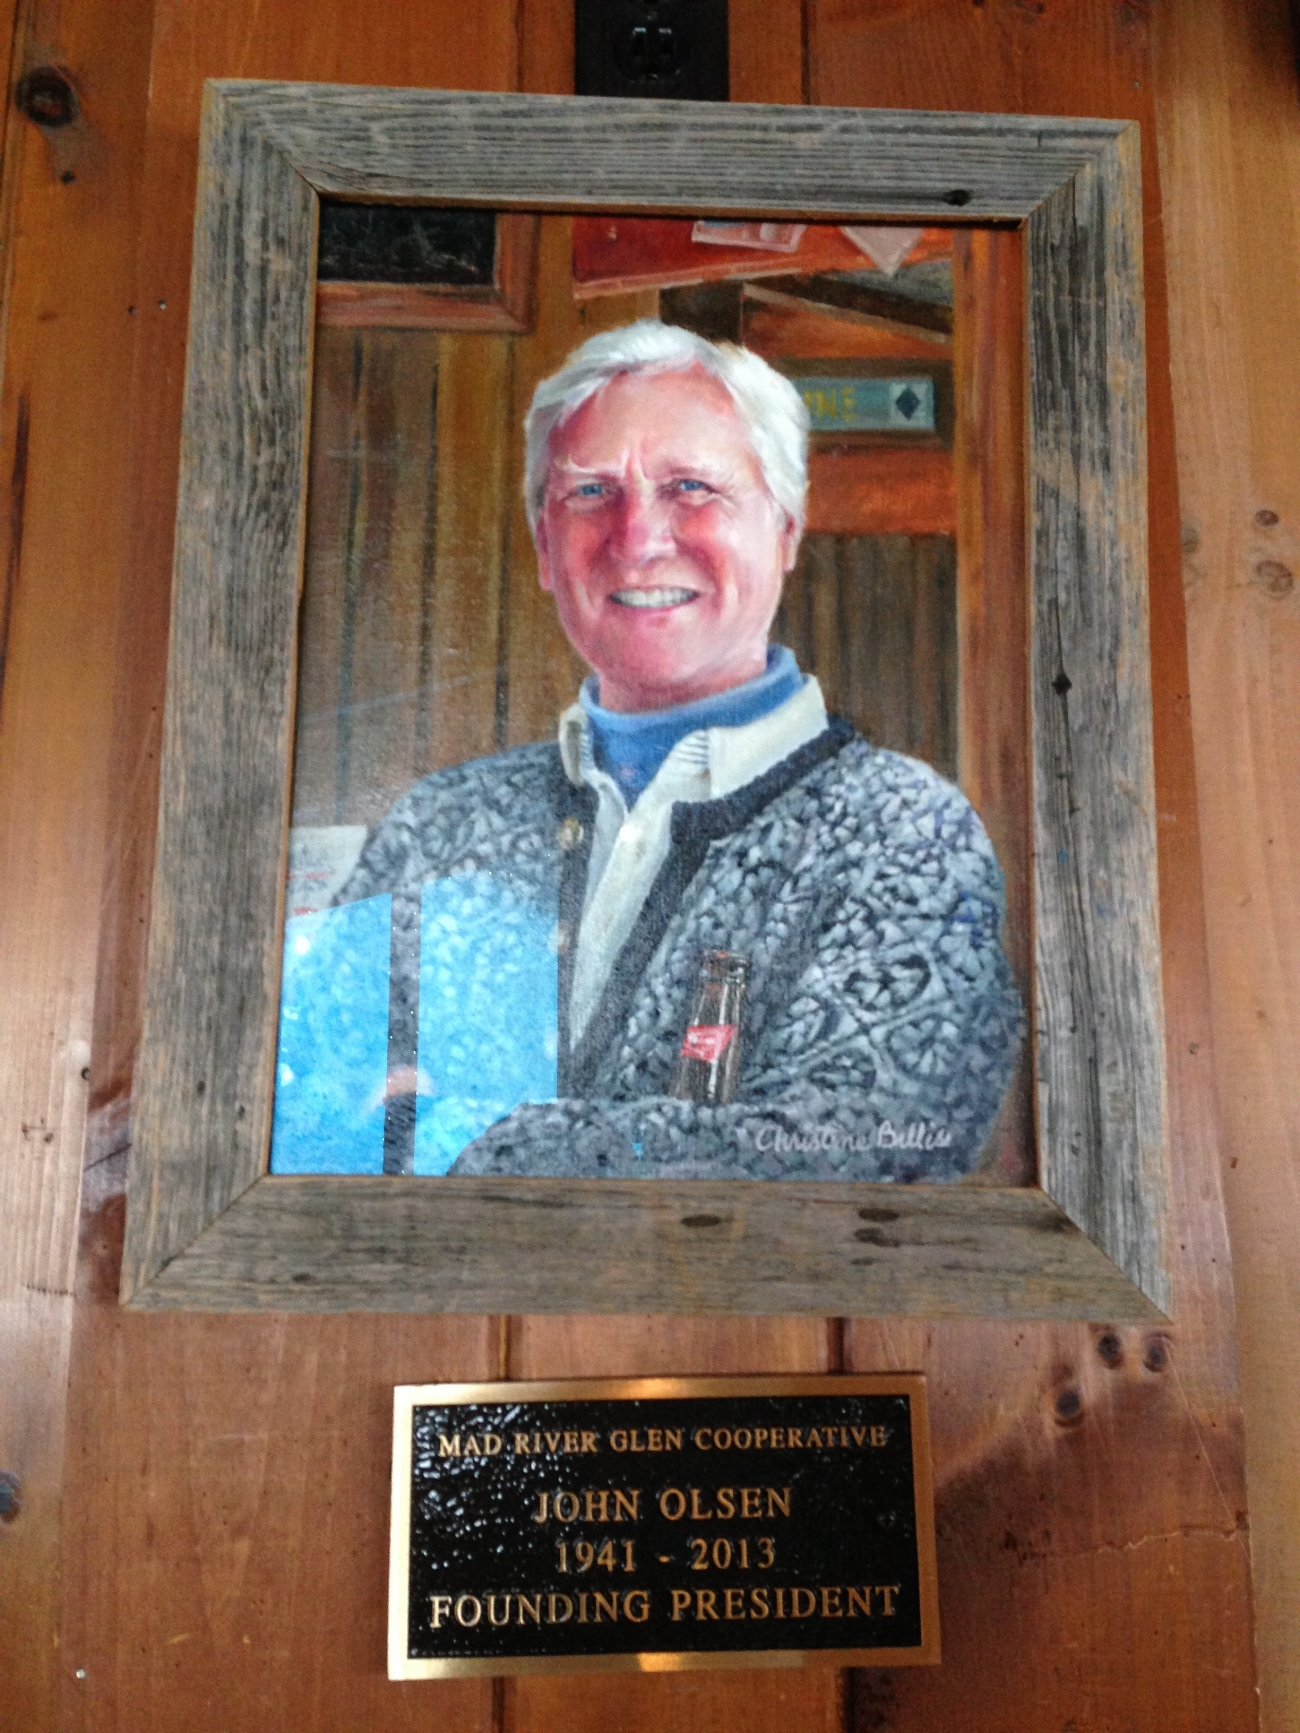 A Portrait of John Olsen, original owner and builder of what is now the Warren Falls Inn, hangs in the bar of Mad River Glen in honor of his contributions to founding the skier-owned mountain.